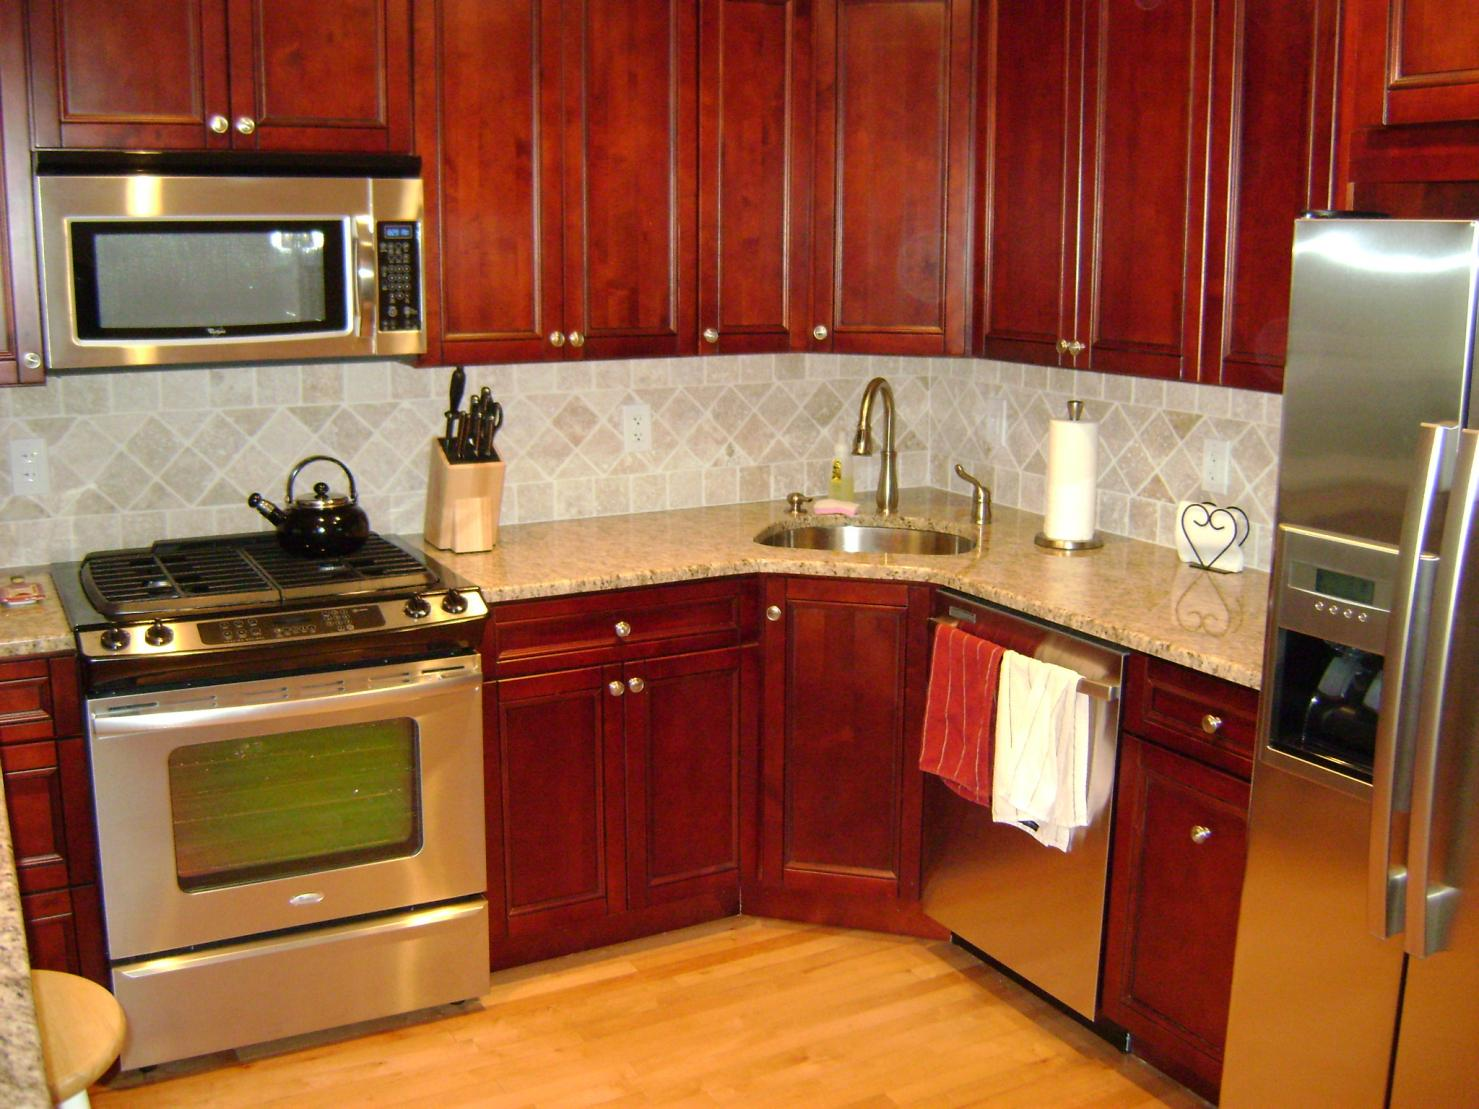 Condo remodel remodeling picture post contractor talk for Small kitchen remodel